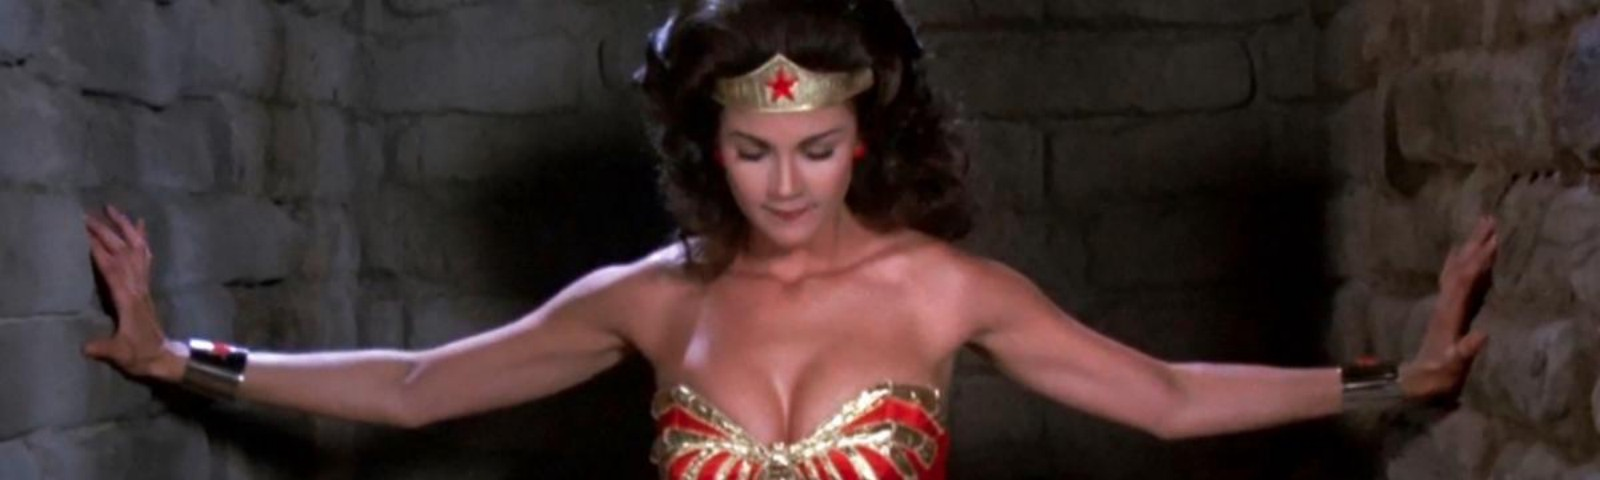 Linda Carter as Wonder Woman.